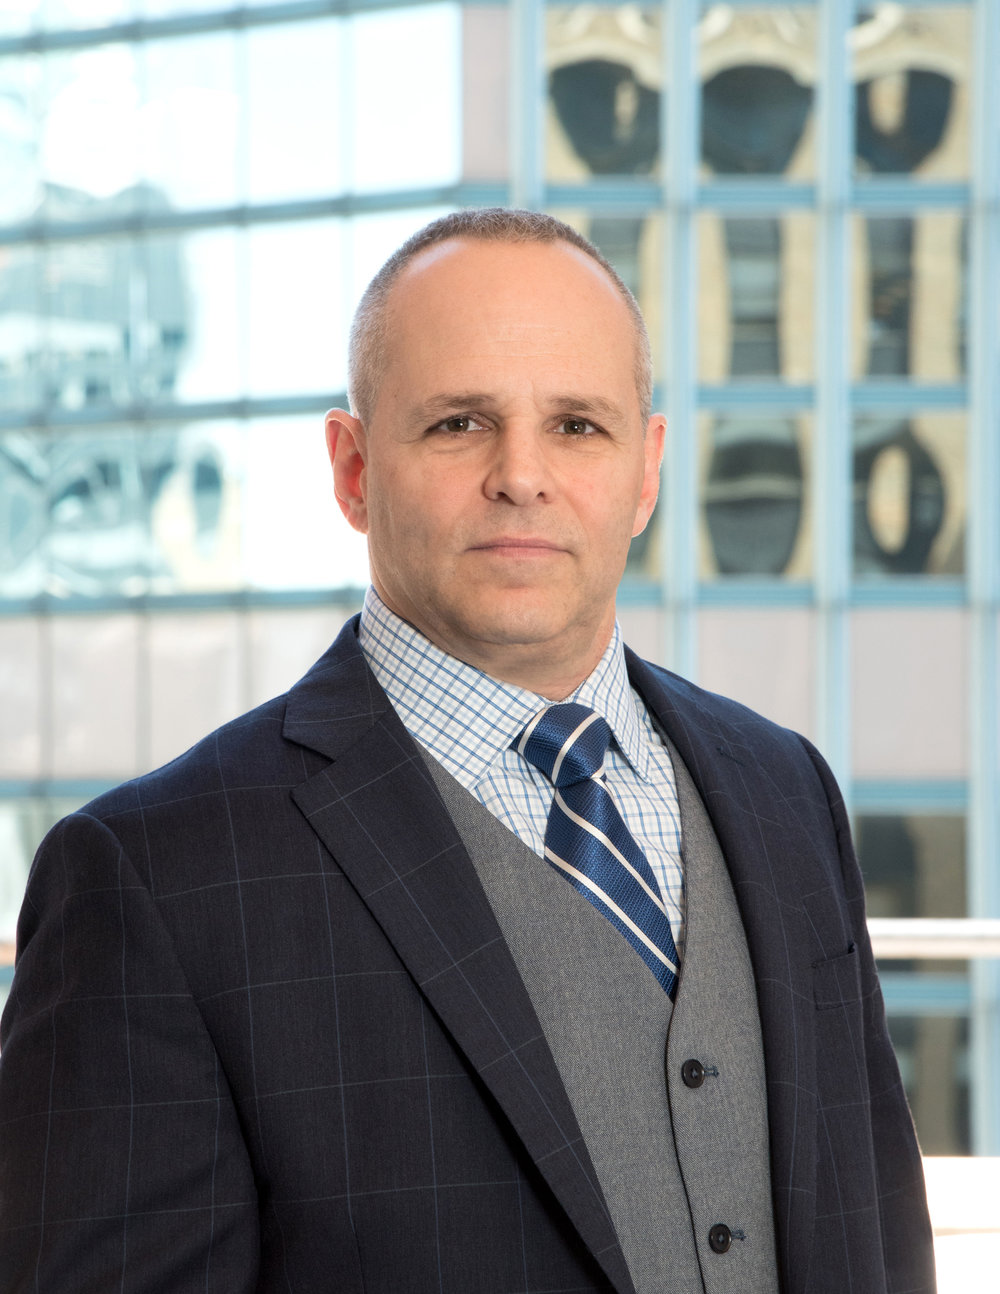 ROBERT J. CYRULI - Robert J. Cyruli, a member of the firm and an AV rated attorney as certified by Martindale-Hubbell, concentrates his practice on matters involving real estate law and commercial litigation. Mr. Cyruli represents both publicly-traded and privately-held commercial real estate concerns and major commercial asset managers in their leasing and management of office, retail and industrial properties, and in related commercial litigation (including commercial landlord/tenant litigation). Among his clients are many of the most prominent such concerns and trophy office properties in the New York metropolitan area. In addition, Mr. Cyruli represents various national and multinational corporate tenants in their real estate interests throughout the United States.Mr. Cyruli has also represented various national title insurance underwriters as litigation counsel in matters involving title insurance claims, as well as various federally insured lending institutions in connection with the origination and enforcement of mortgage loans and secured obligations. In the field of governmental affairs, Mr. Cyruli has successfully represented clients in matters before the highest levels of New York State and City governments and their various agencies.For many years, Mr. Cyruli has been counsel on a pro bono basis to the Foundation for Ethnic Understanding, a national not-for-profit organization based in New York City dedicated to fostering relations between the Jewish American community and various other ethnic American communities. Mr. Cyruli is also an ardent supporter of the Friends of the Israel Defense Forces (FIDF) and a member of the American Israel Public Affairs Committee (AIPAC). He is also a member of the New York State Bar Association, the Real Estate Board of New York and the Lambda Chi Alpha national fraternity.EDUCATIONMr. Cyruli received a Juris Doctor degree from the Benjamin N. Cardozo School of Law at Yeshiva University, and received a Bachelor of Arts degree in Political Science from Rutgers University.ADMISSIONSHe is admitted to practice law before the courts of New York, New Jersey, the District of Columbia, the United States District Courts of the Southern and Eastern Districts of New York, the United States District Court for the District of New Jersey and before the United States Supreme Court.